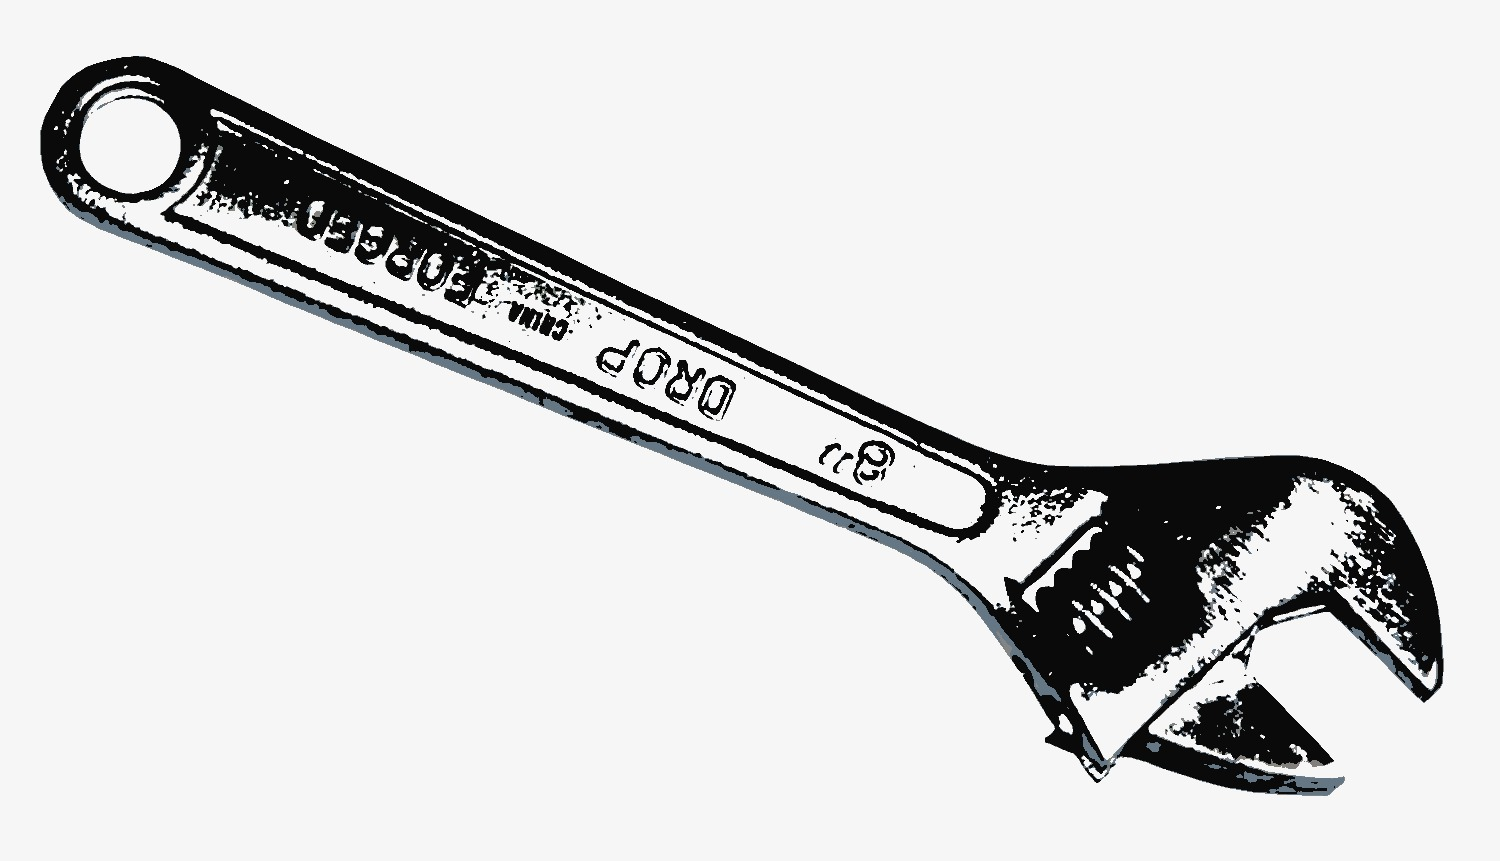 Wrench Clipart - Clipa...